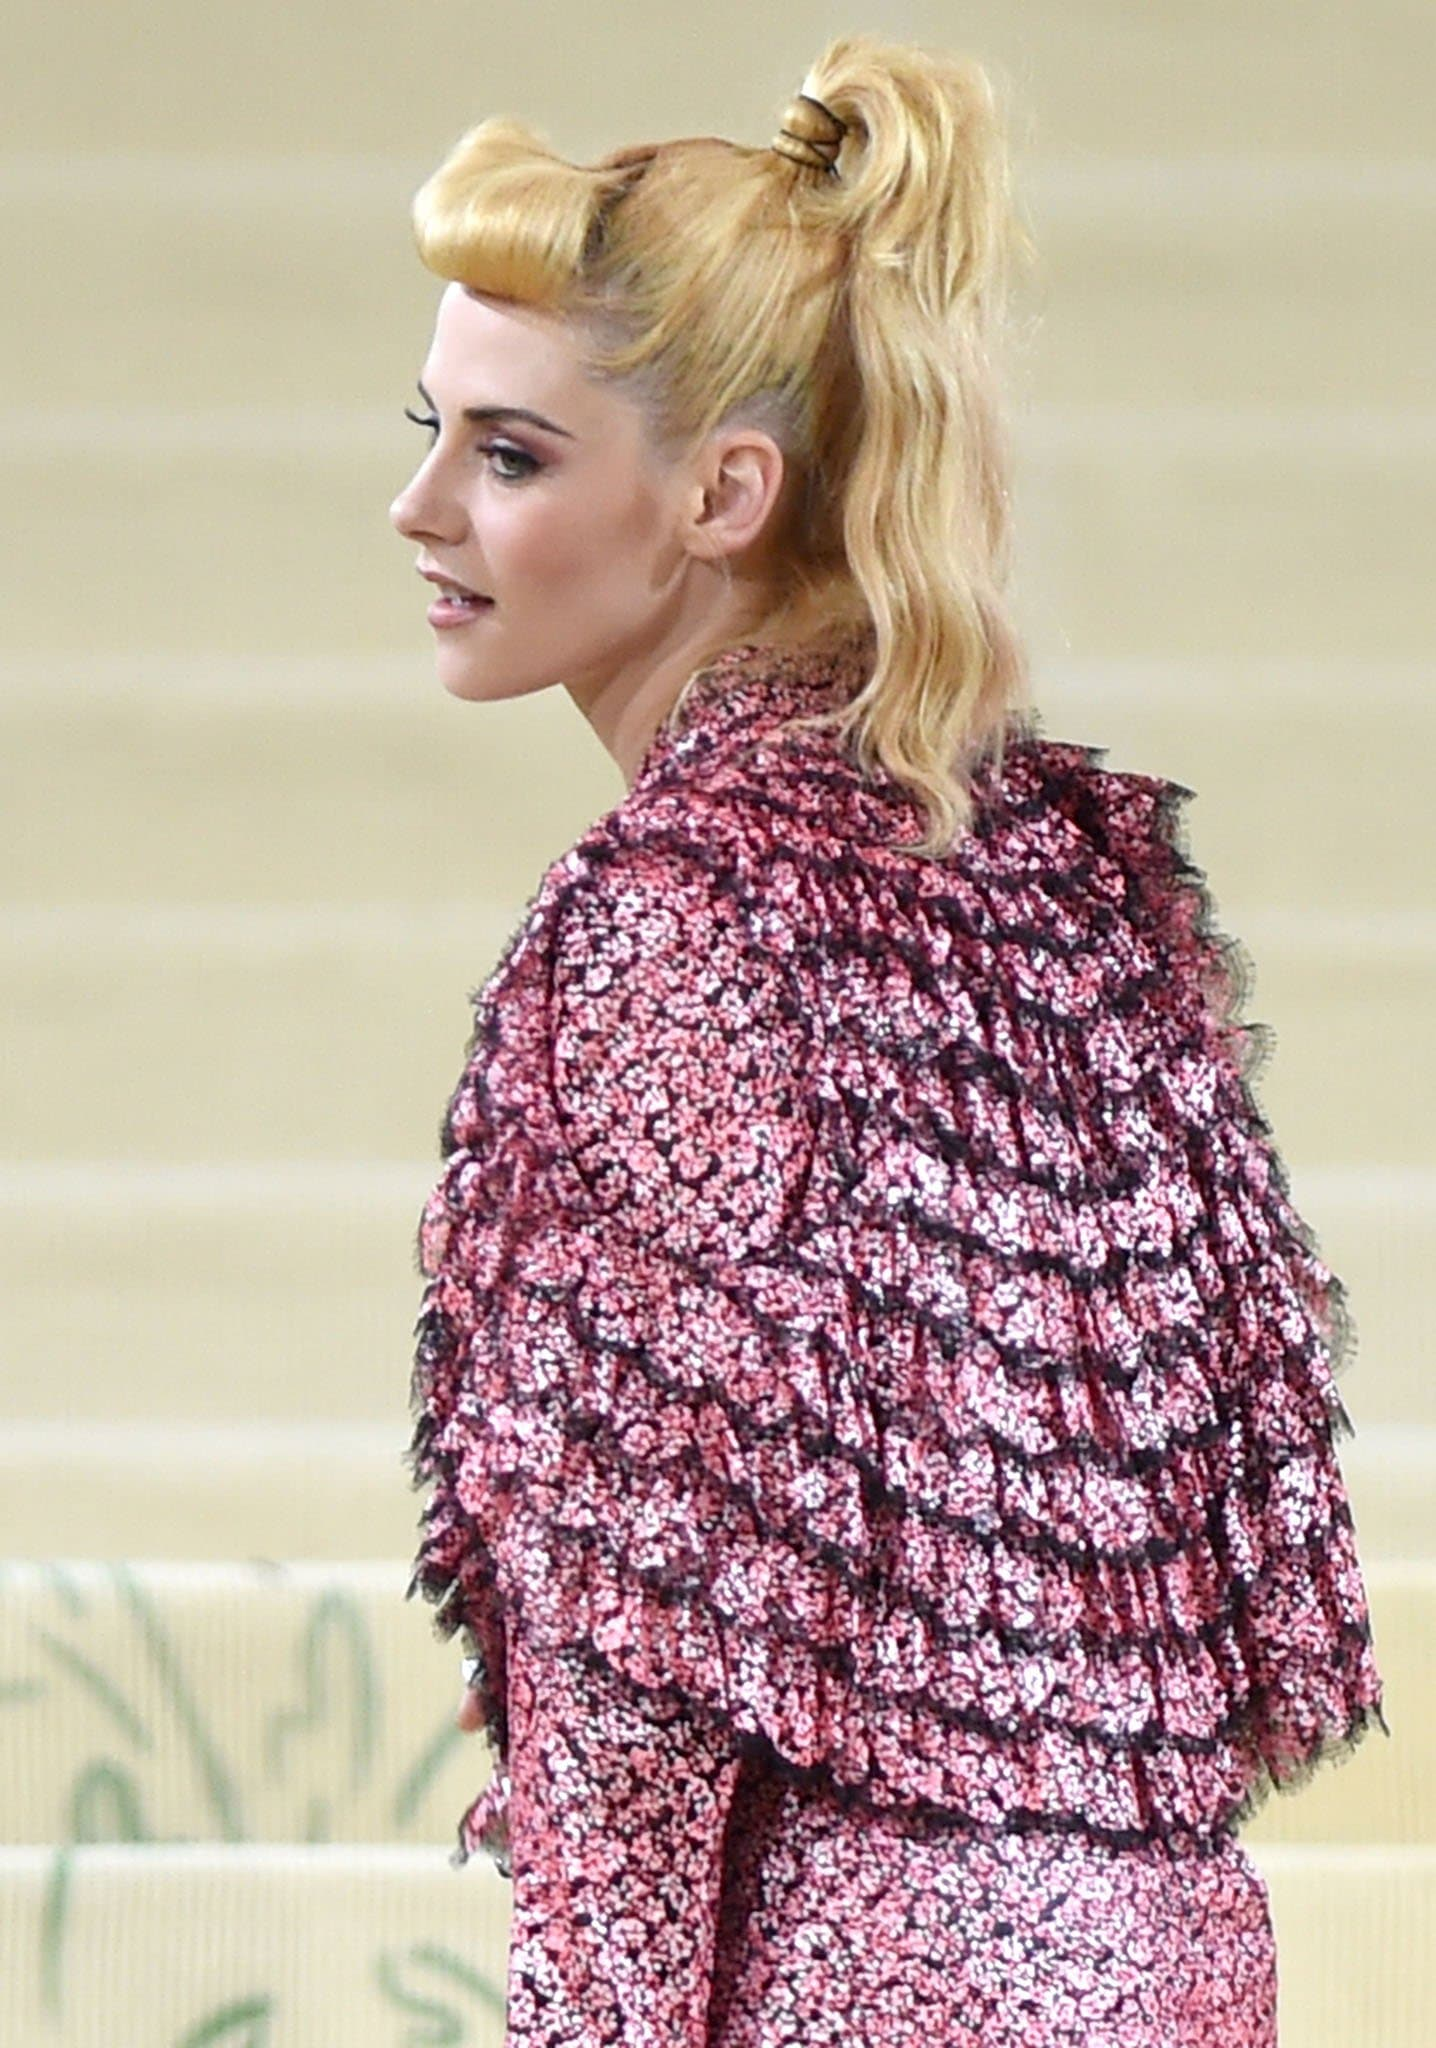 Kristen Stewart wears barbie pink smokey eye-makeup and styles her hair in a high ponytail with faux-fringe